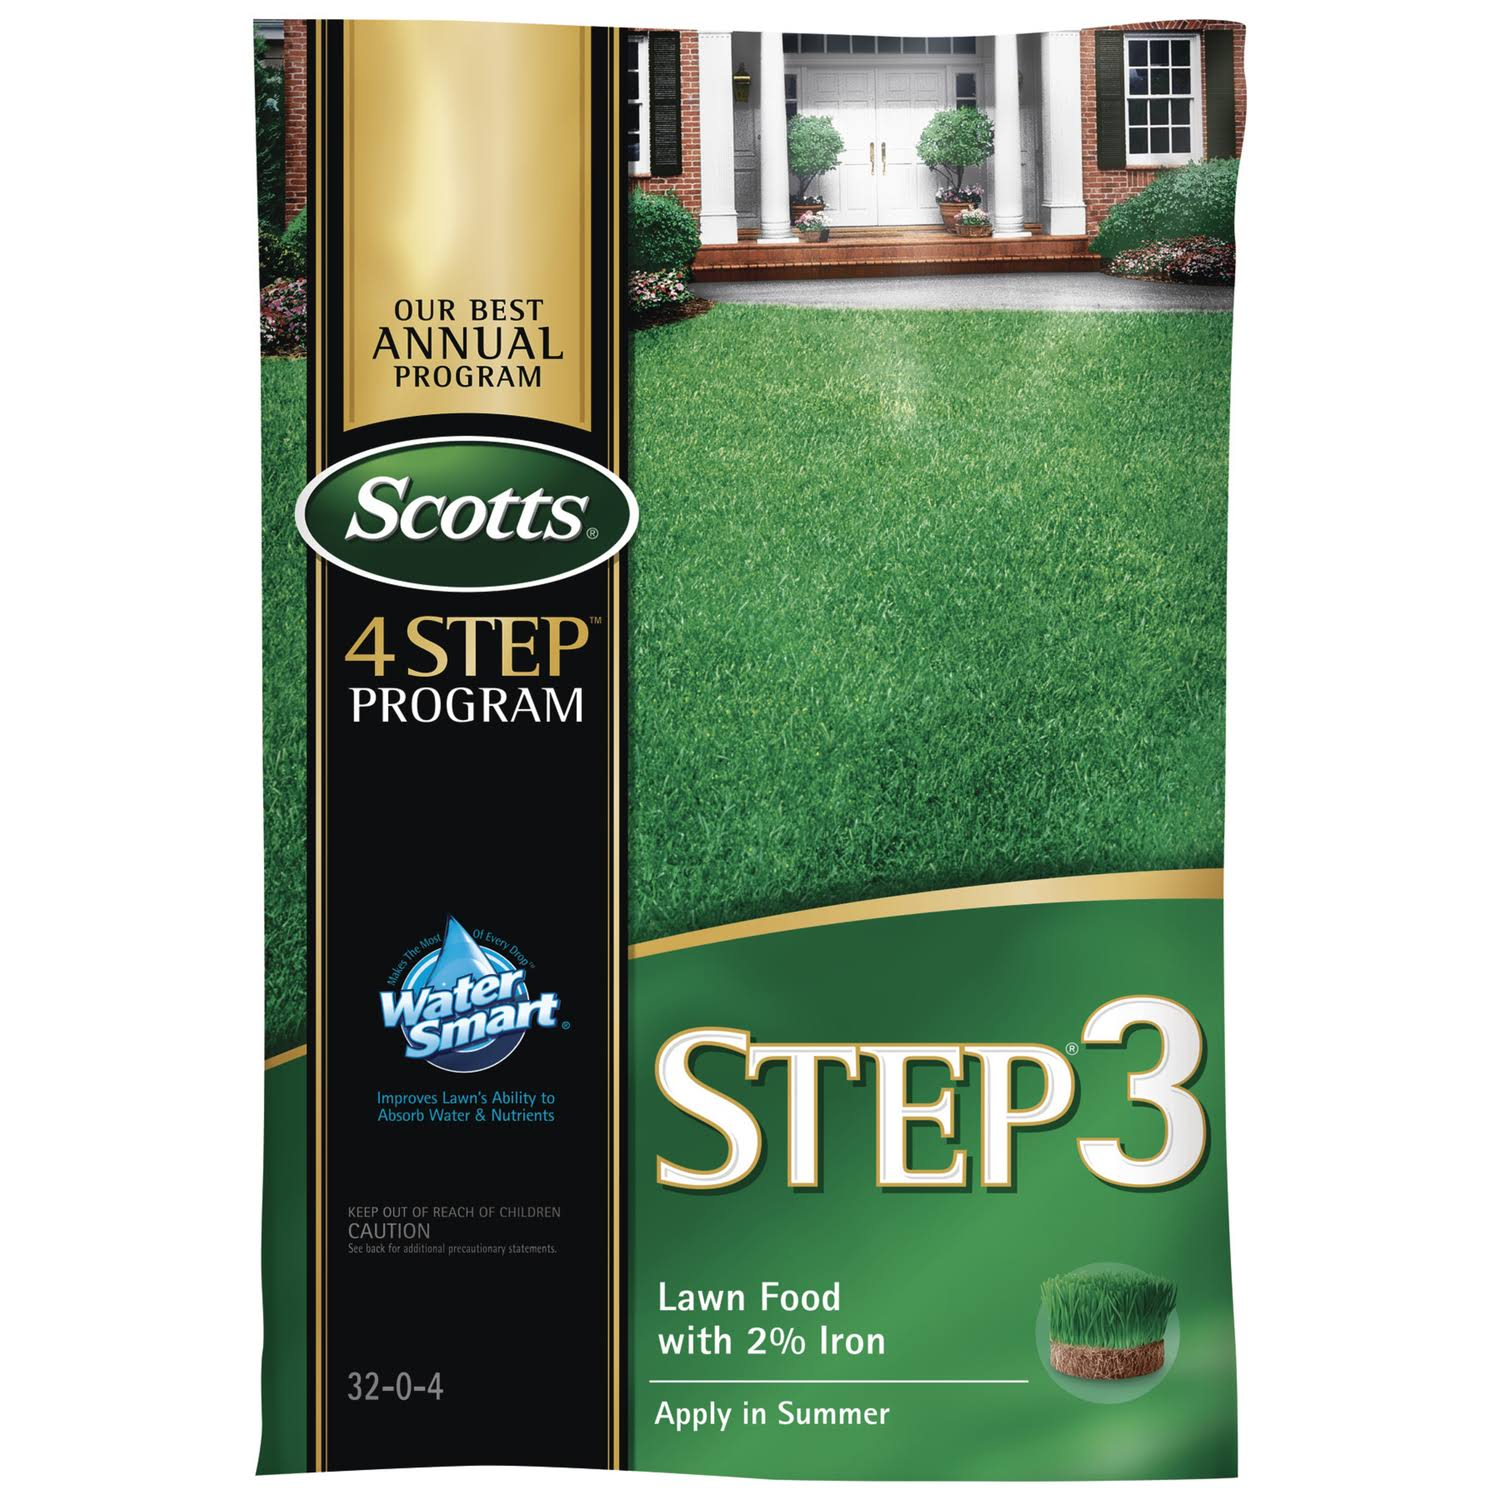 Scotts Lawnpro Step 3 Lawn Food